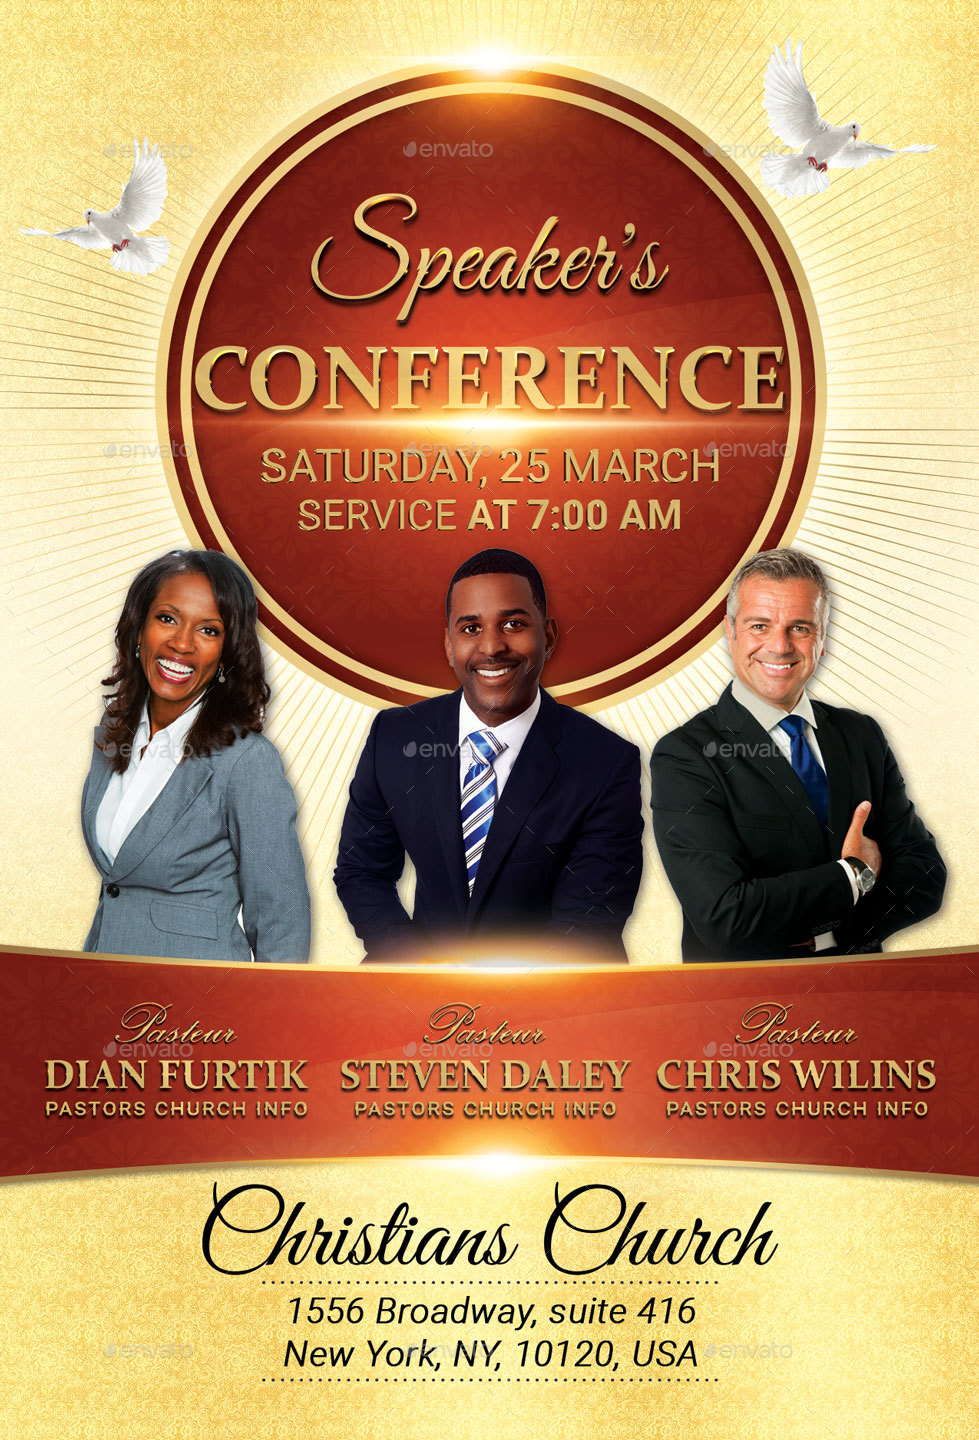 speaker u0026 39 s conference church flyer by oloreon